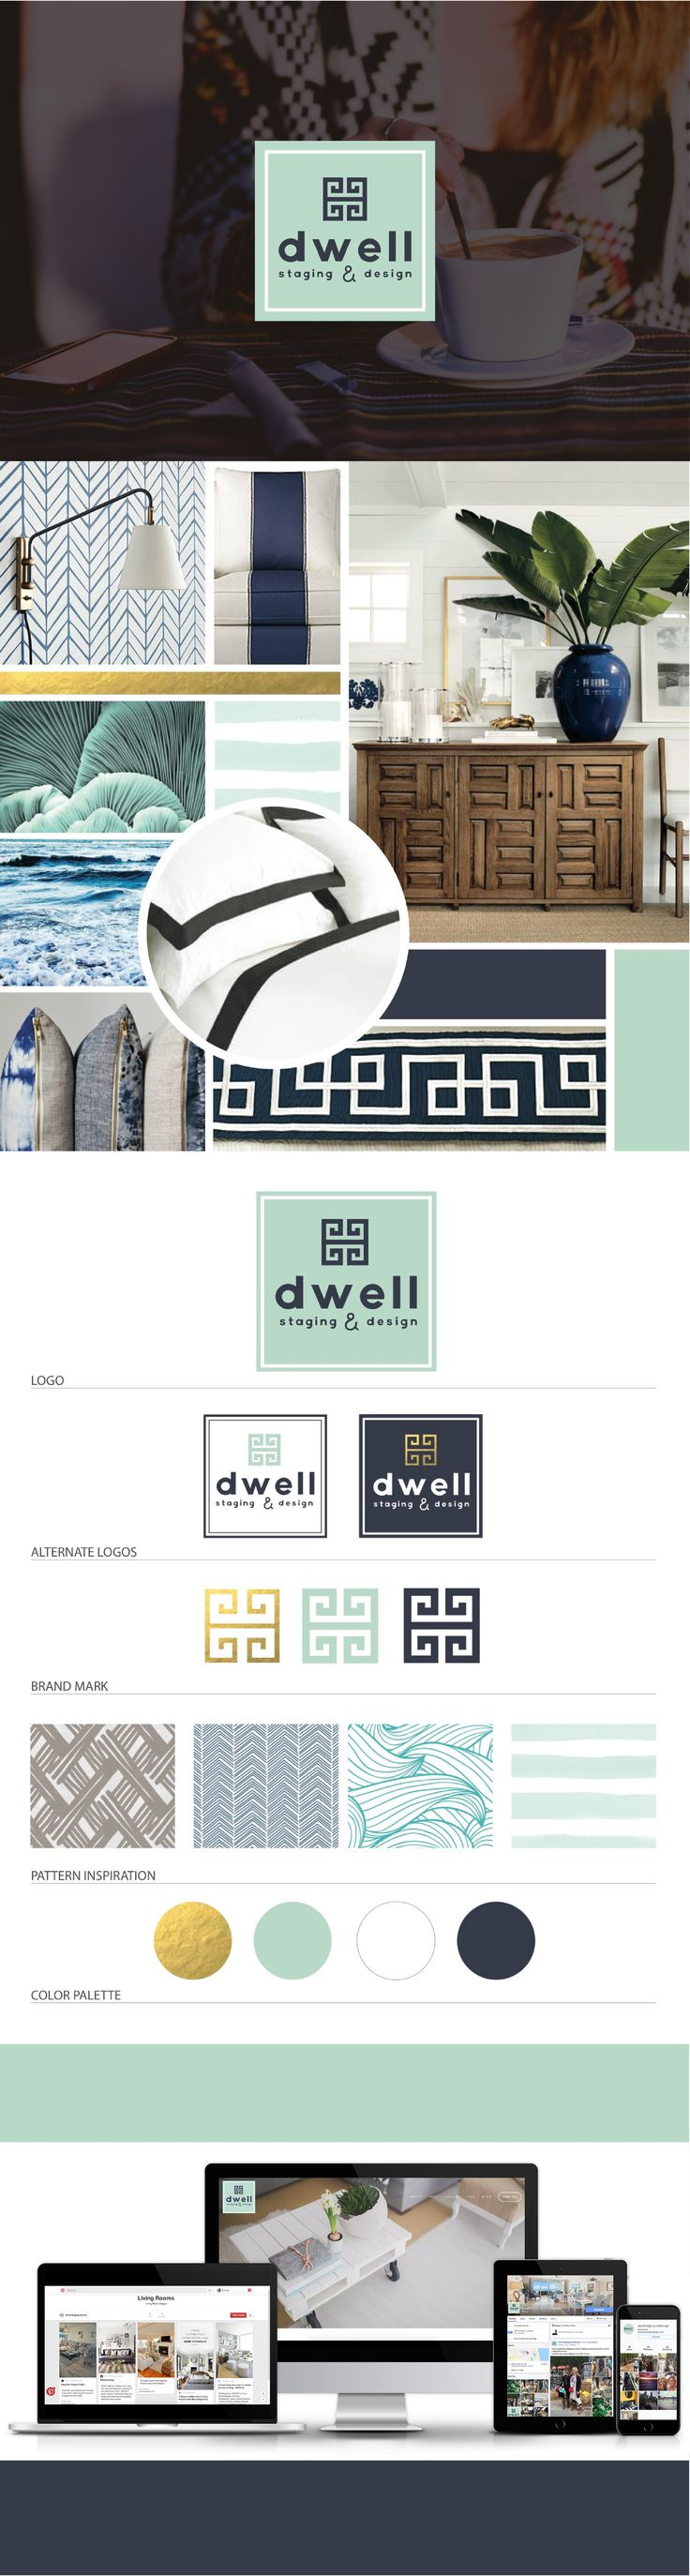 Brand Launch: Dwell Staging & Design - Digital Design Co. | visit: http://www.thedigitaldesignco.com/dwell-client-page to see full mood board, website design, branding guide, logo design, gold foil, logo variations, interior design branding, seafoam green color palette #digitaldesign